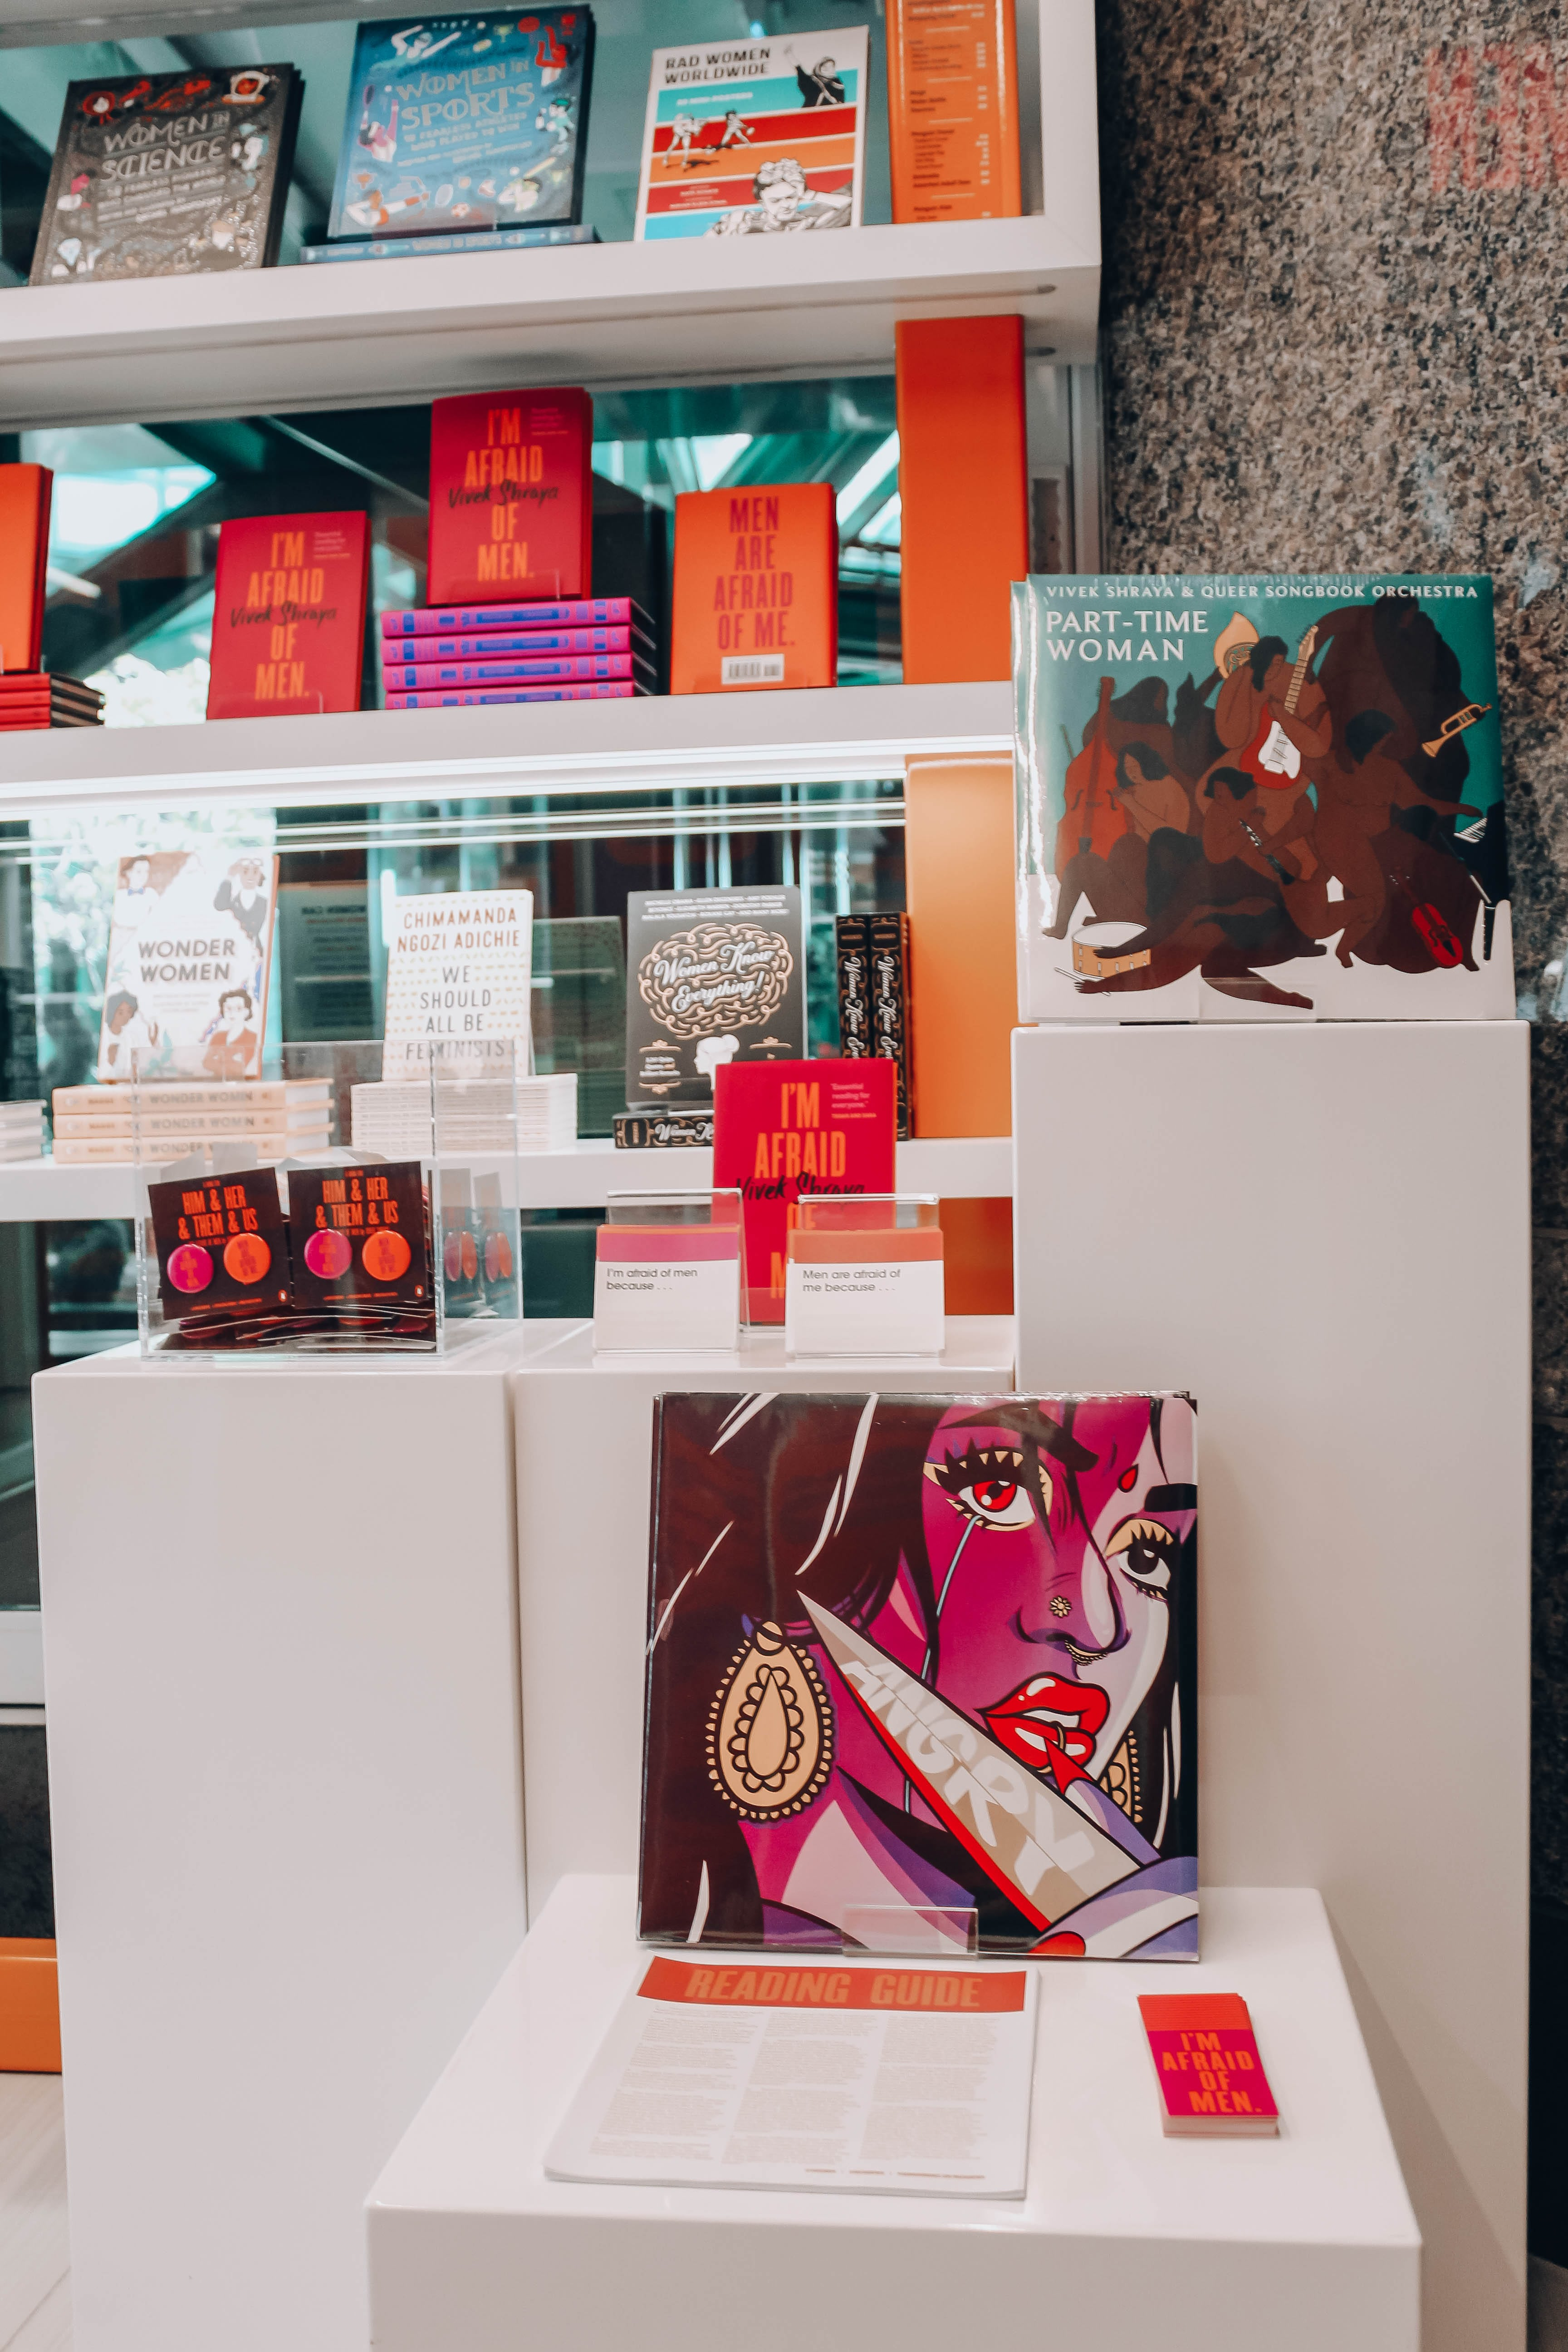 A display of books and records by Vivek Shraya at the Penguin Shop